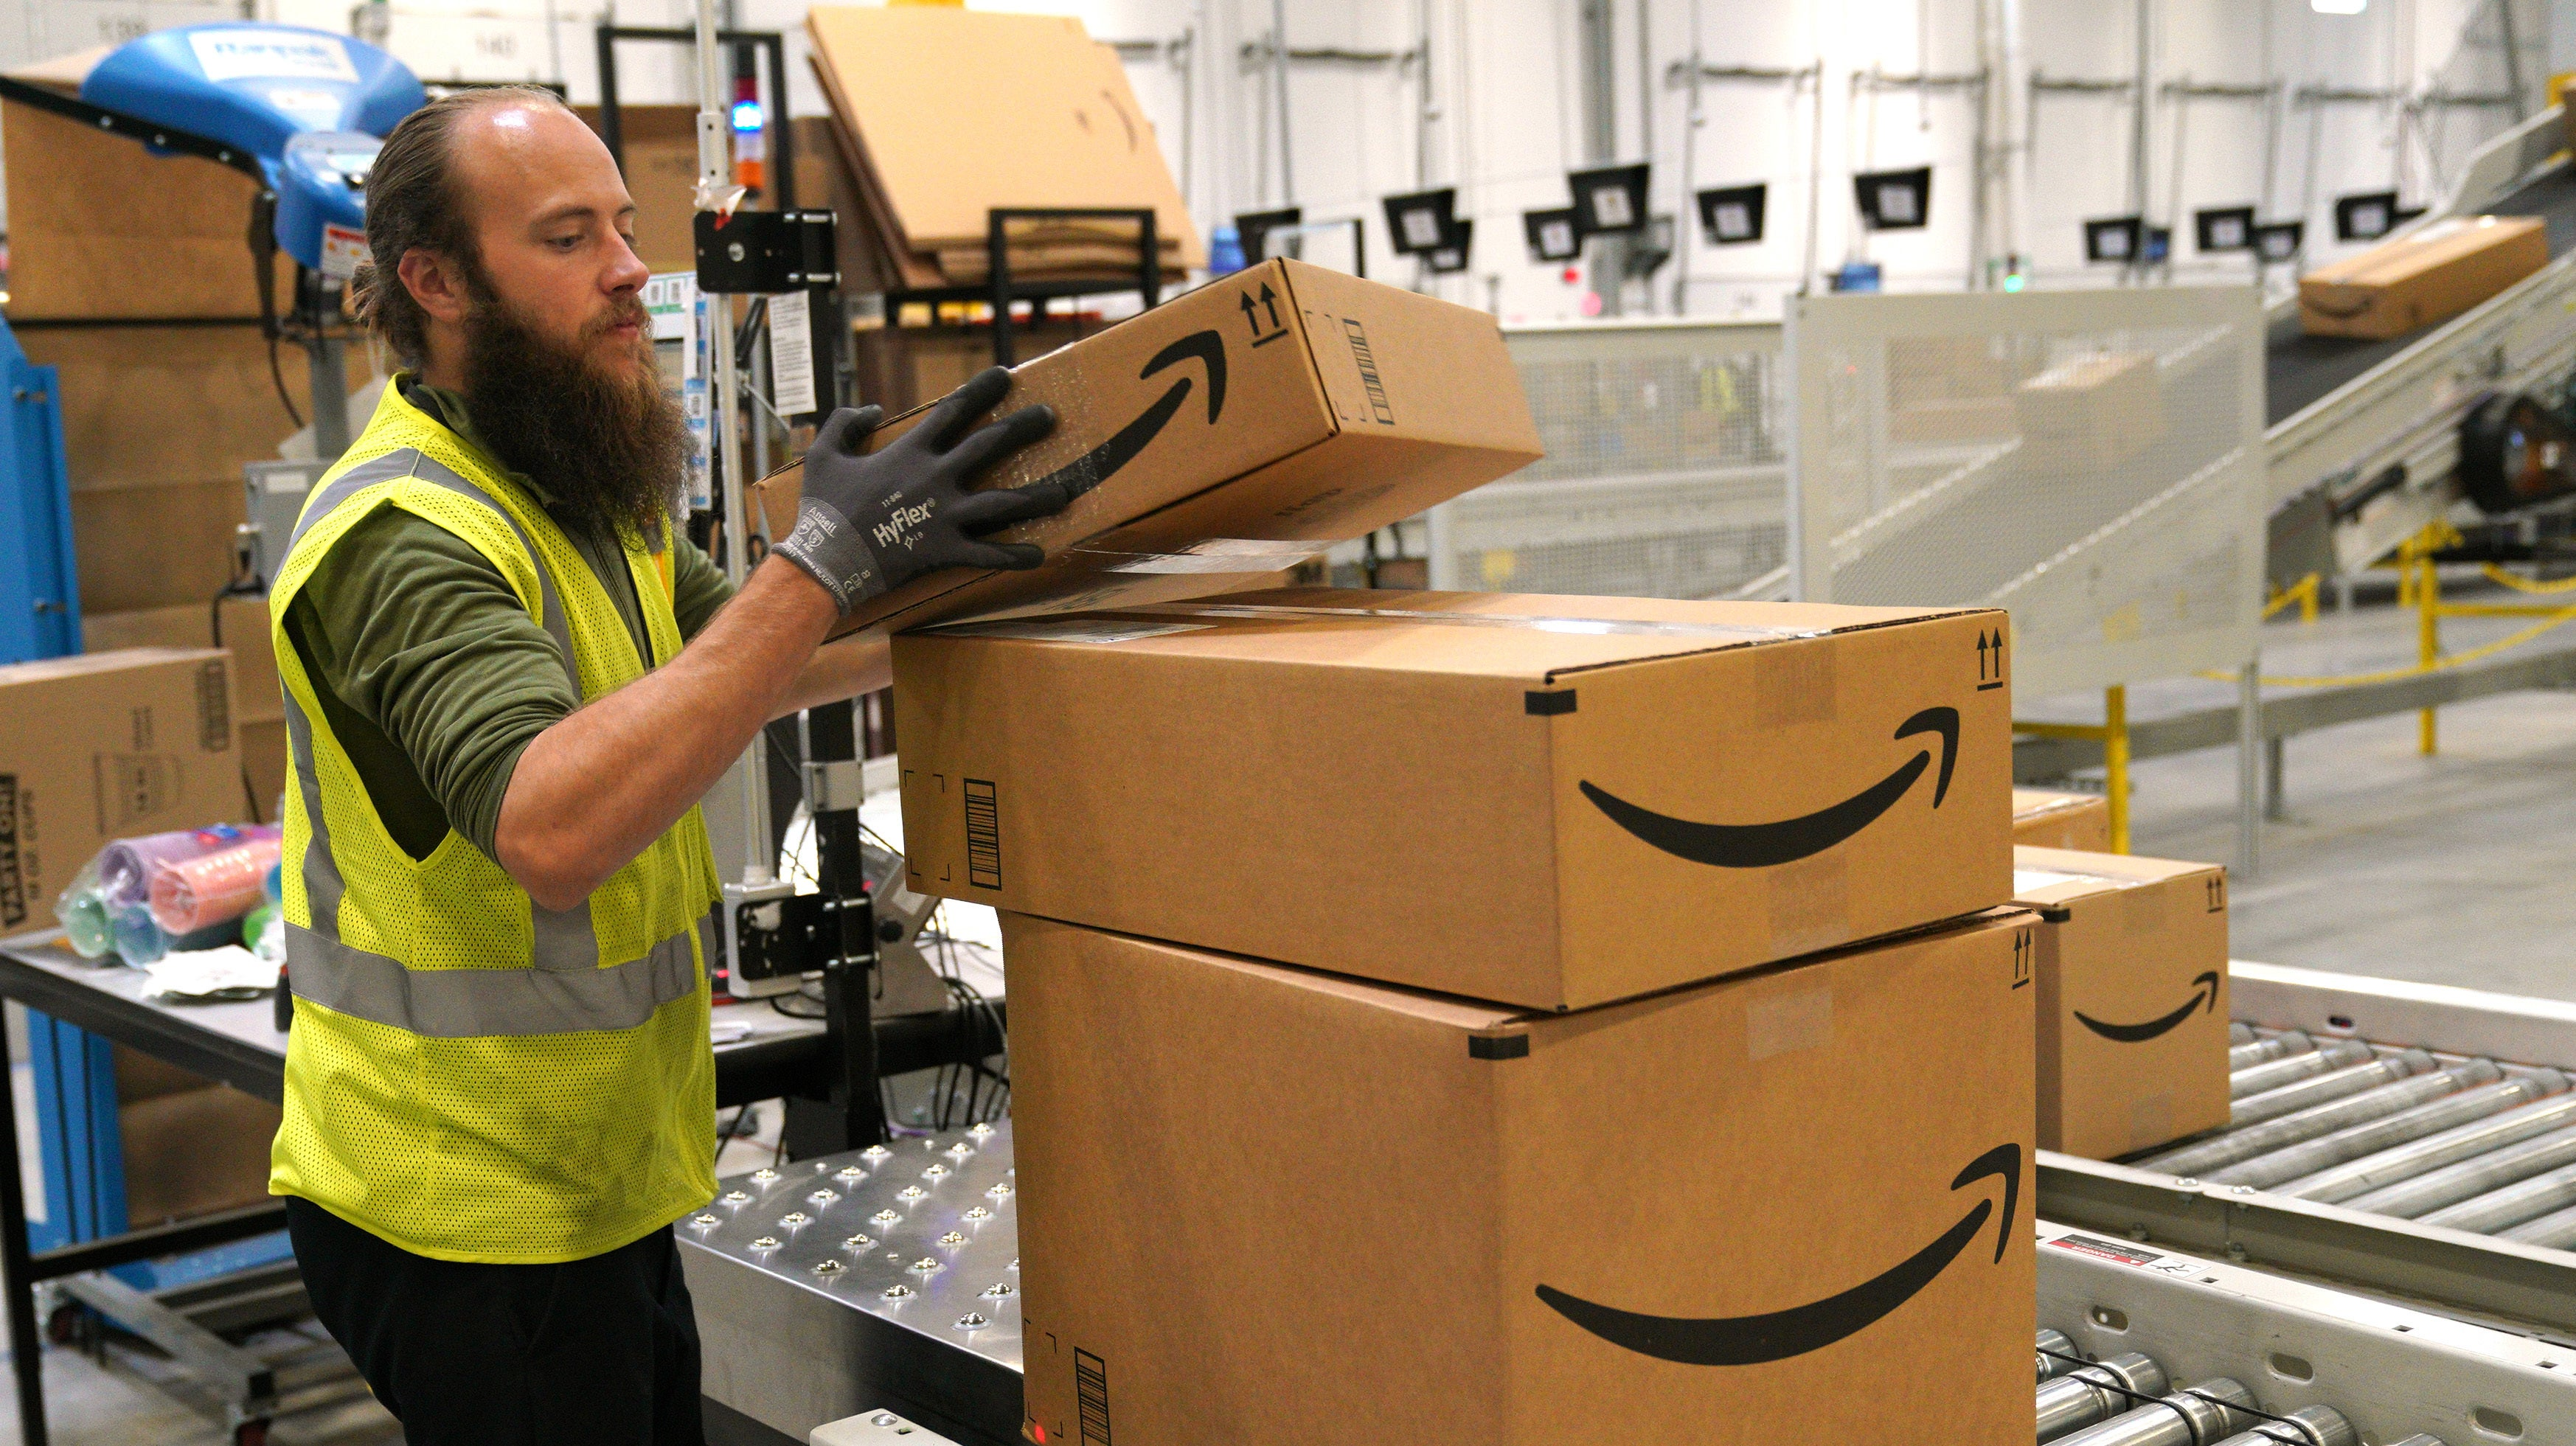 Amazon's New Plan For Fighting Counterfeit Crap Is Letting Brands Deal With It